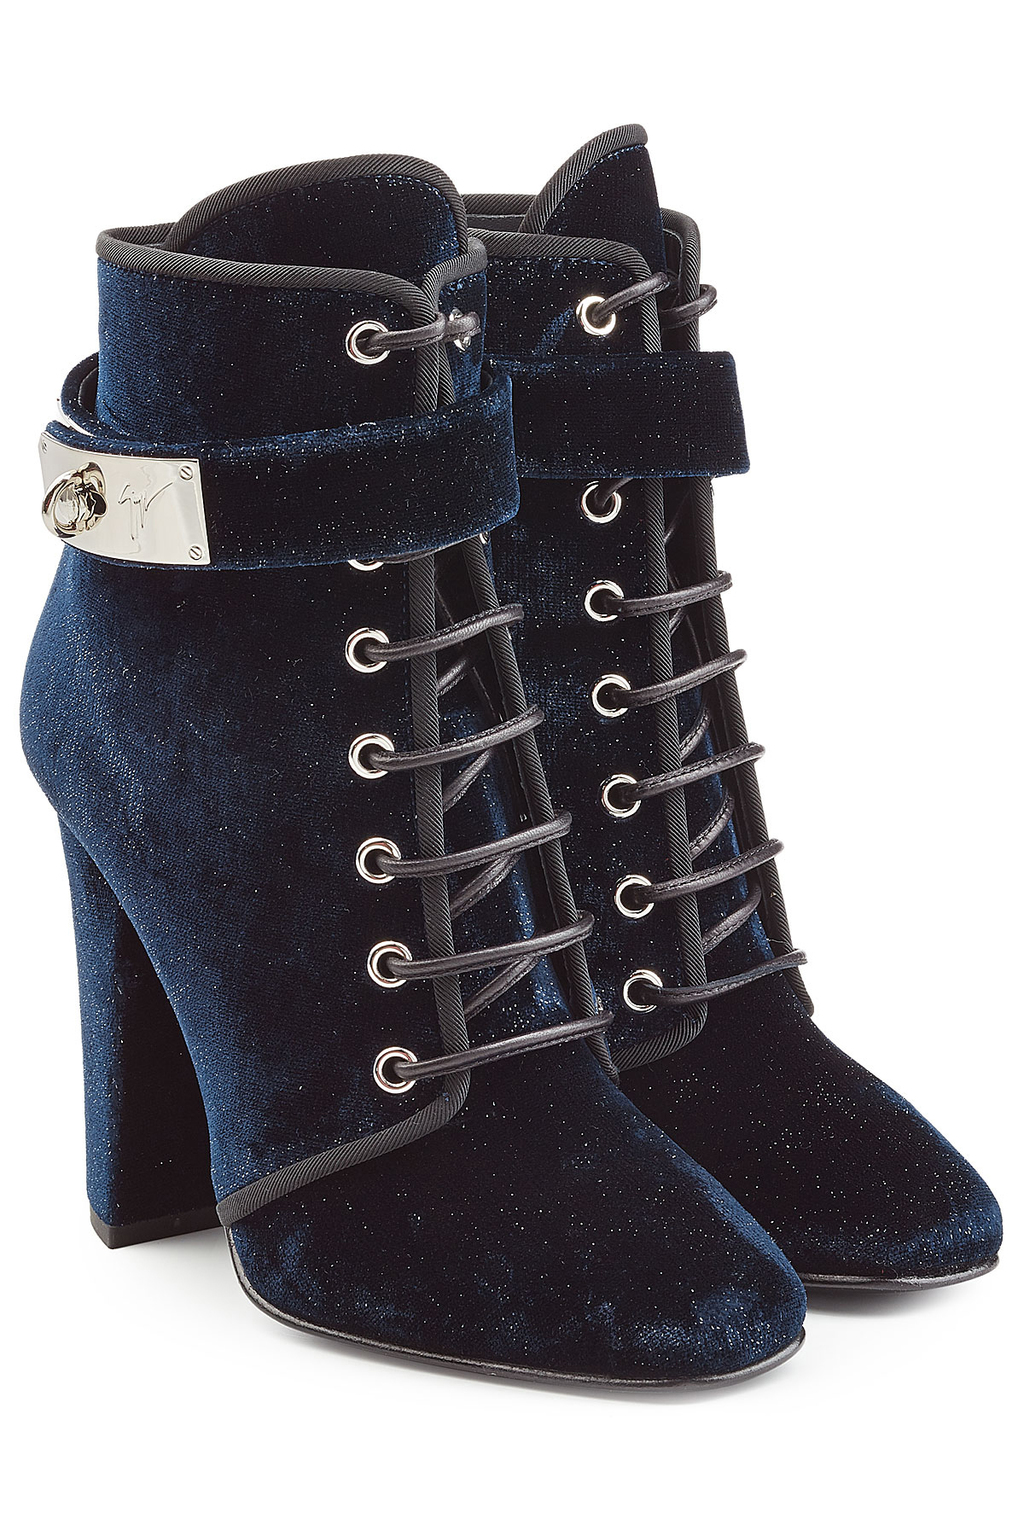 Velvet Ankle Boots Blue - predominant colour: navy; occasions: casual; material: velvet; heel height: high; heel: block; toe: round toe; boot length: ankle boot; style: standard; finish: plain; pattern: plain; season: a/w 2016; wardrobe: highlight